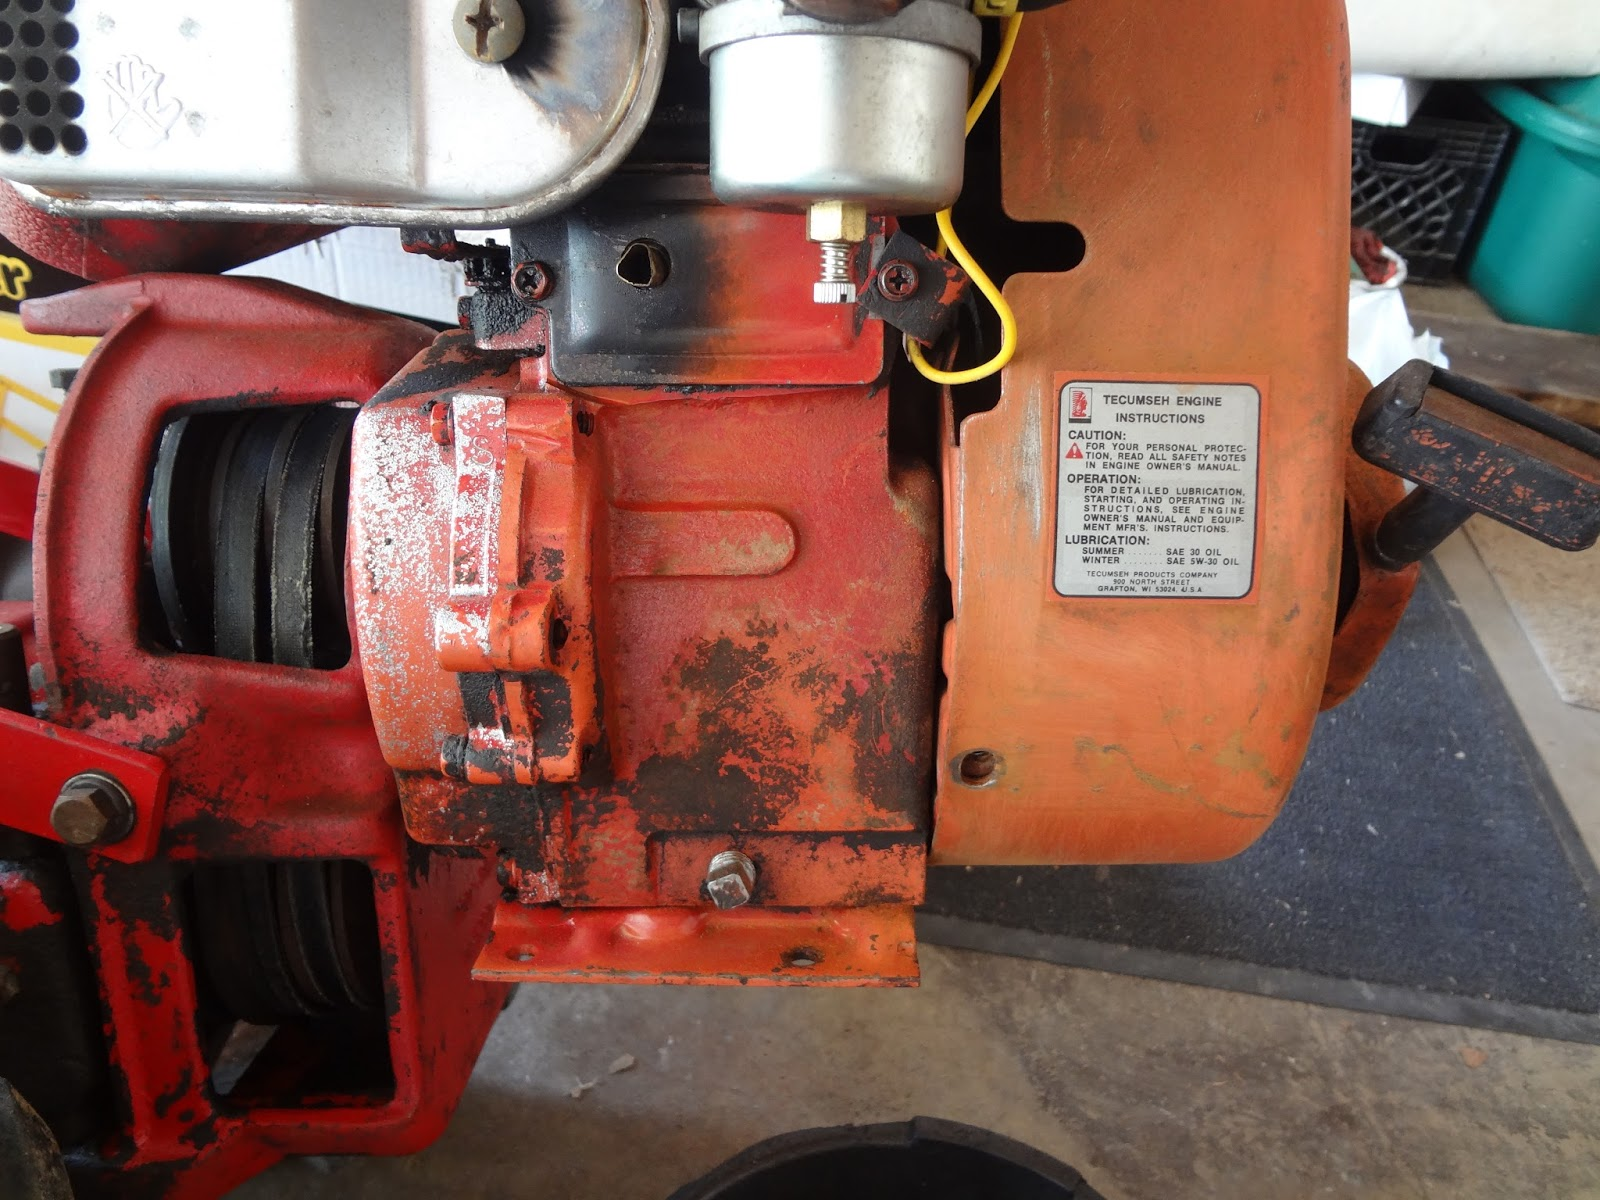 The somewhat orange, somewhat red Tecumseh HH60 engine. It didn't match!